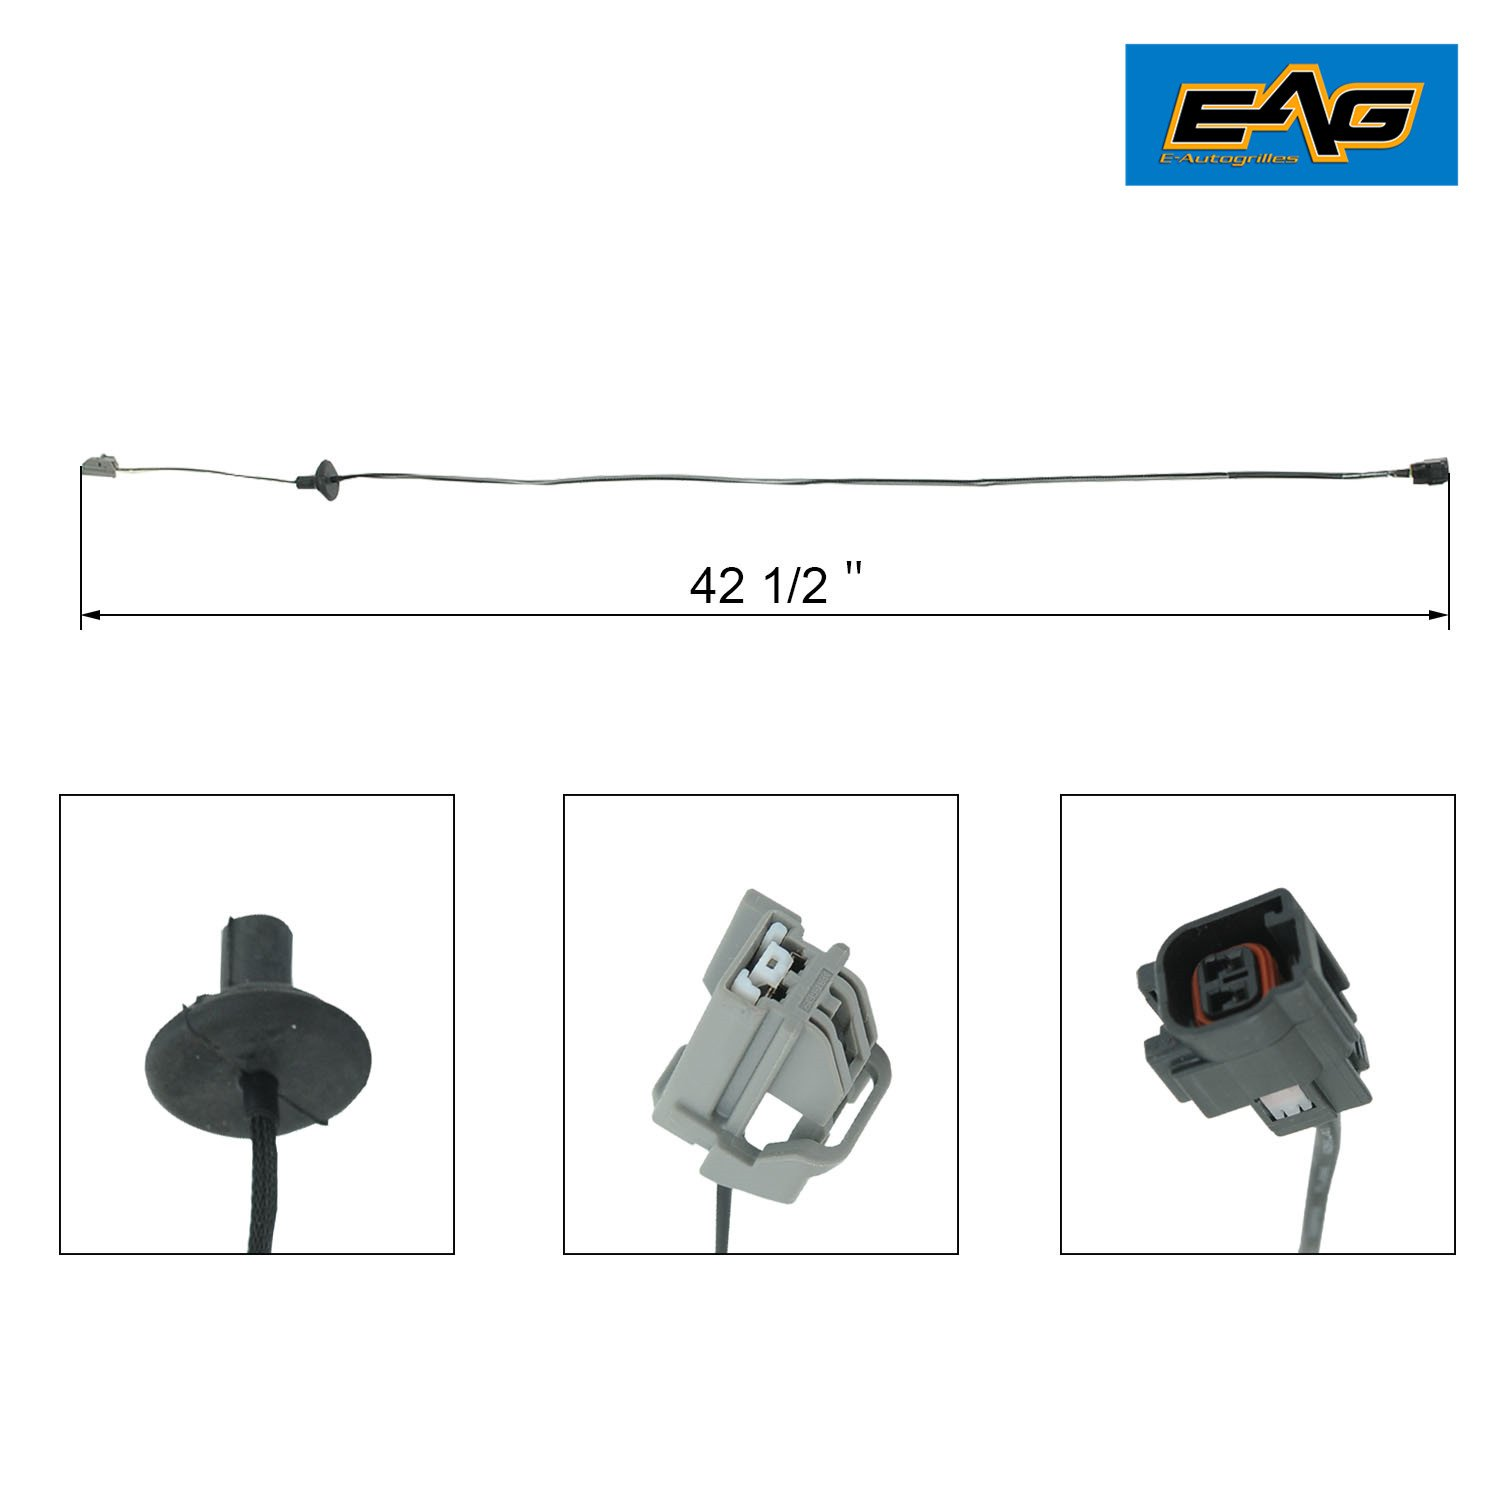 Eag 07 18 Jeep Wrangler Jk 425 Third Brake Light Stop Lights 4 Wire Wiring Harness Extension Single Automotive